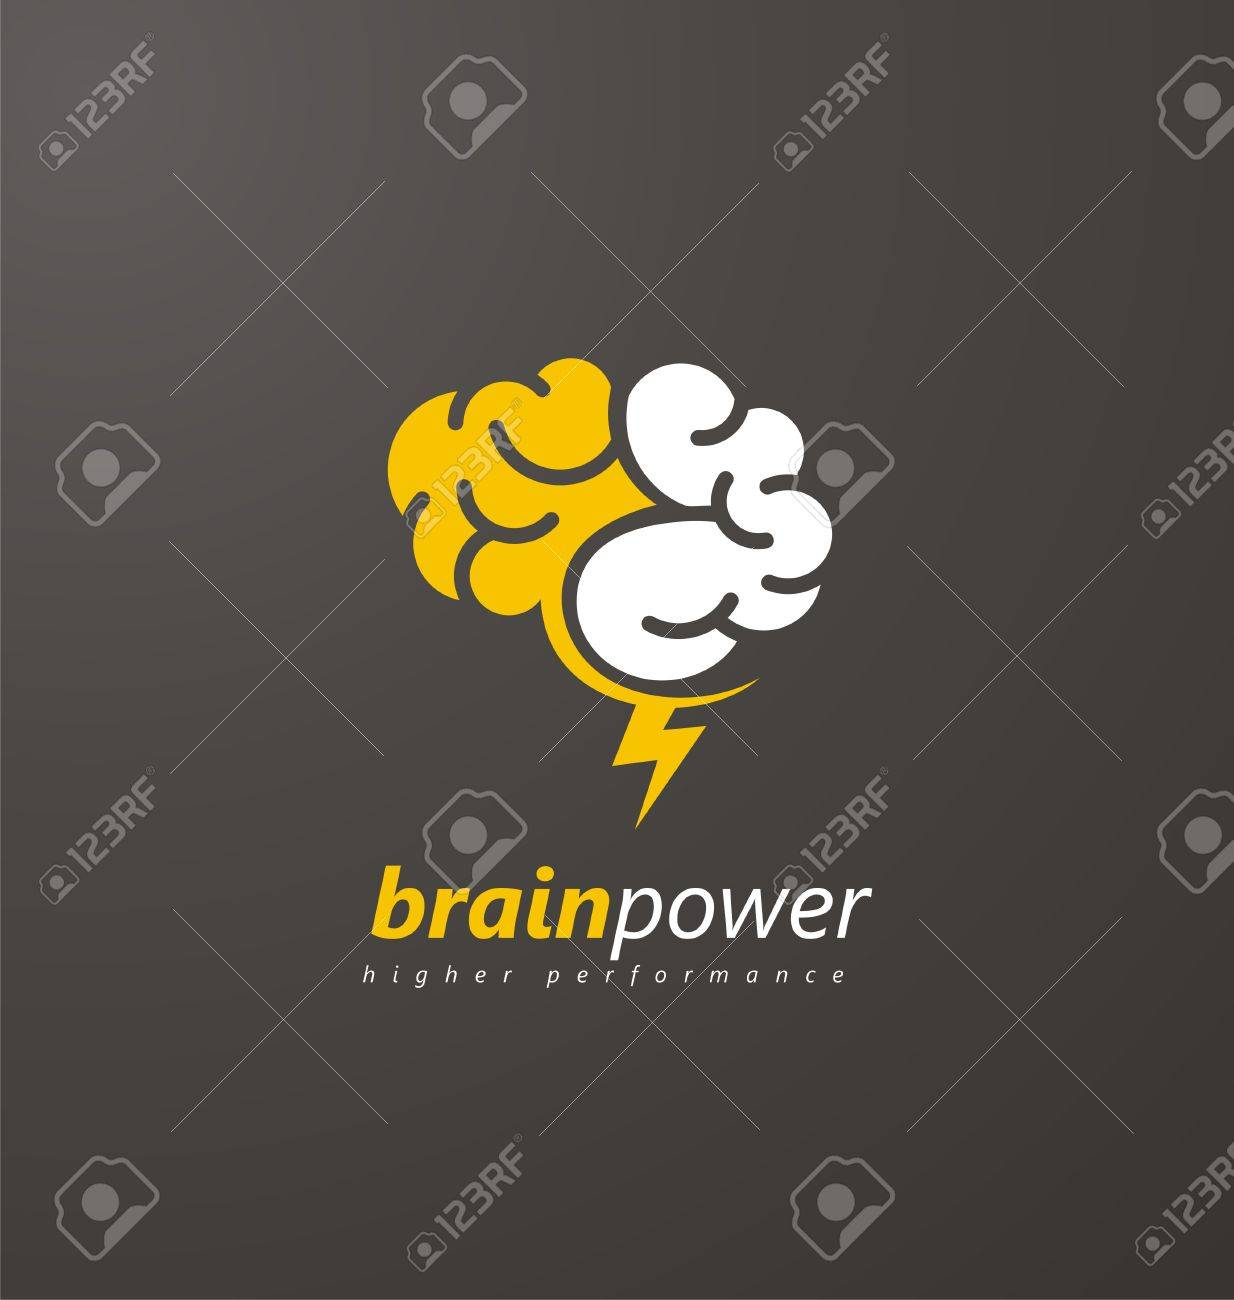 Abstract brain symbol with yellow thunderbolt on a dark background abstract brain symbol with yellow thunderbolt on a dark background stock vector 56341120 biocorpaavc Images